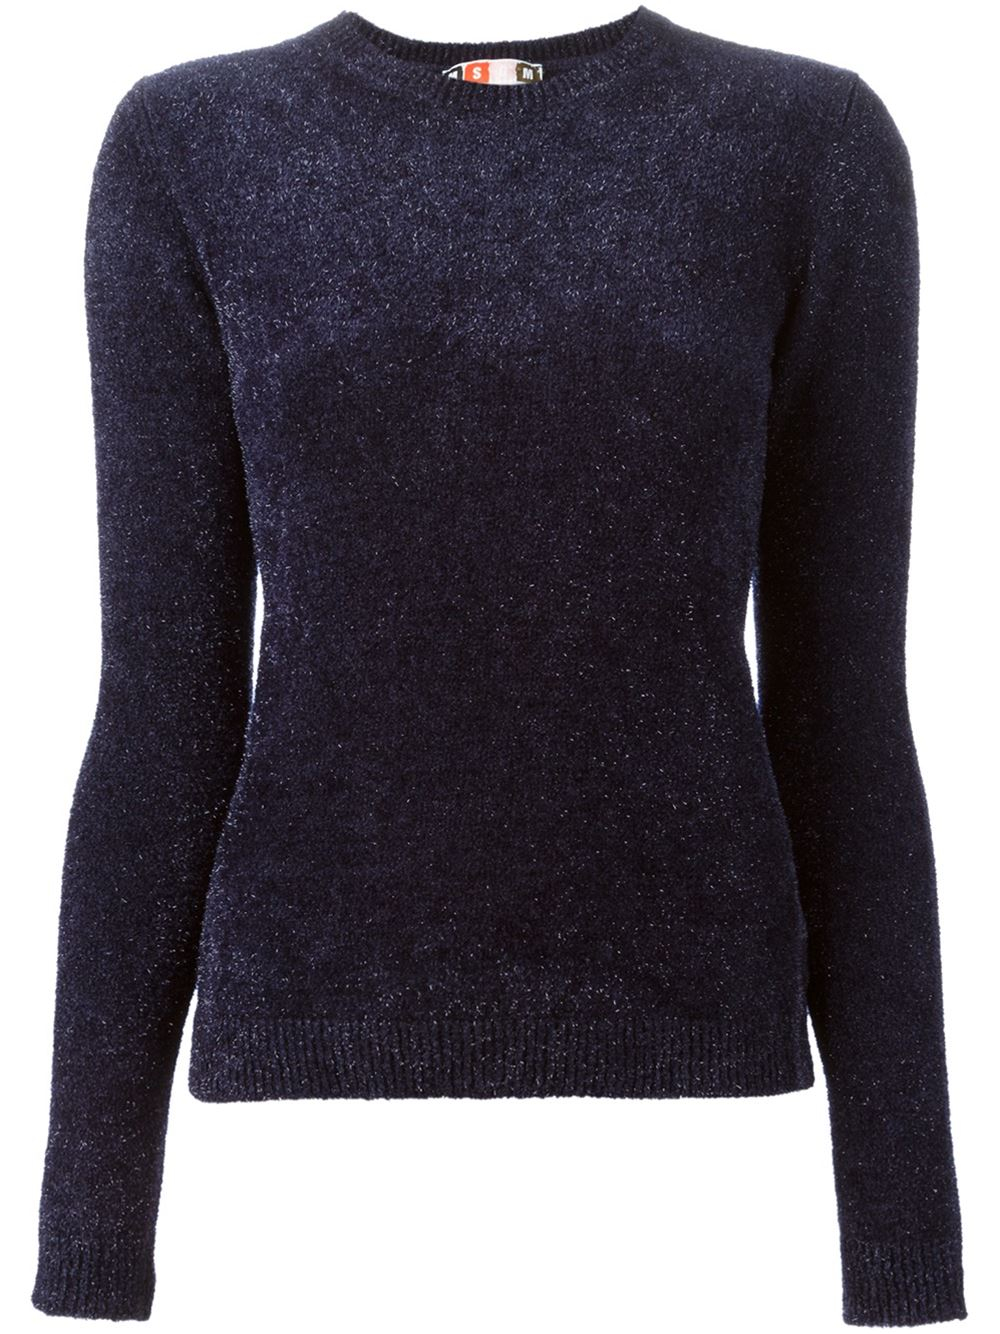 Msgm Glitter Sweater in Blue | Lyst